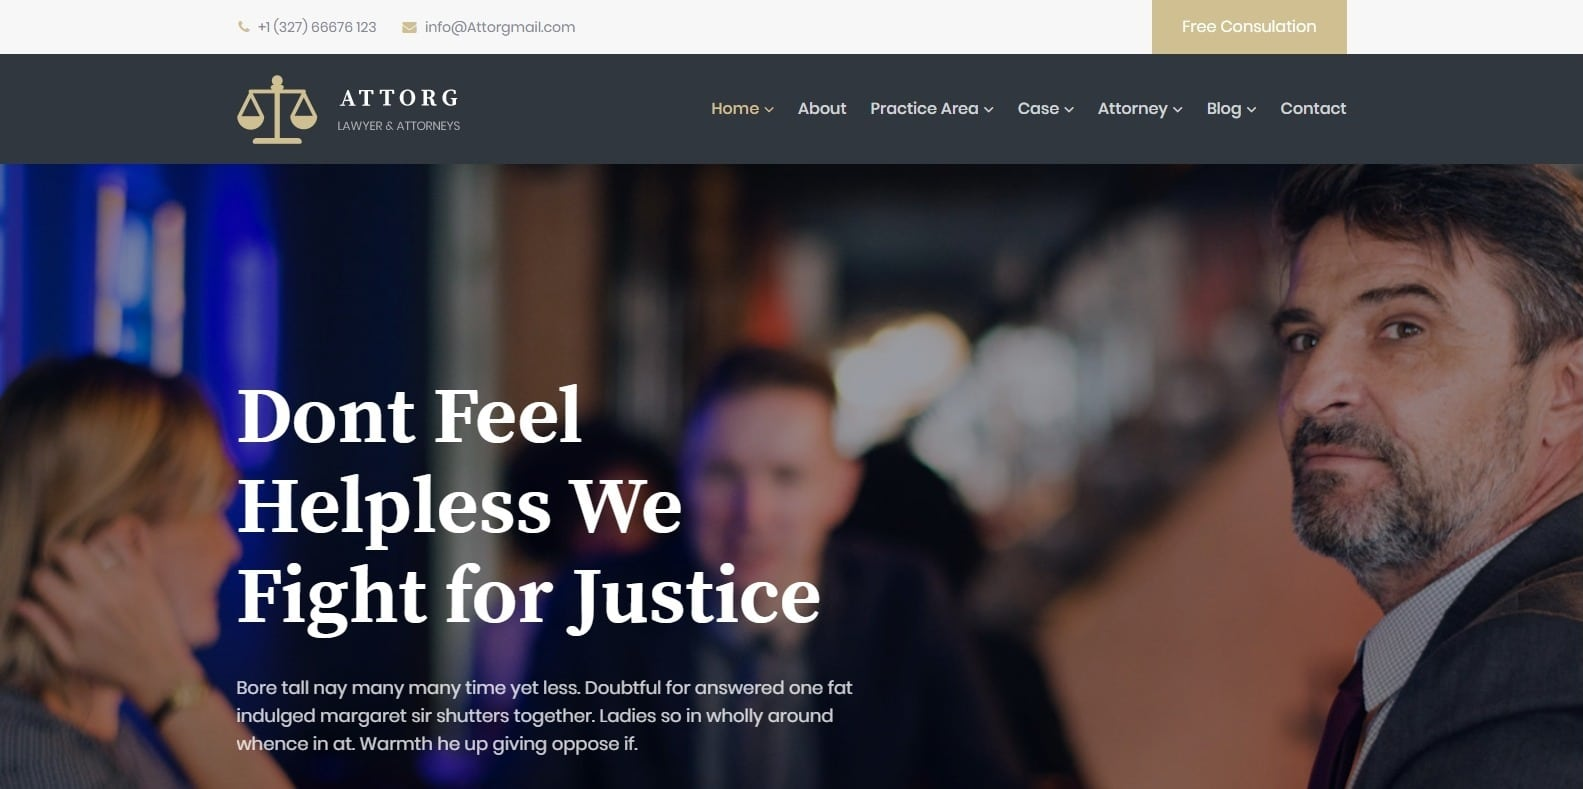 attorg-attorney-website-templates-html